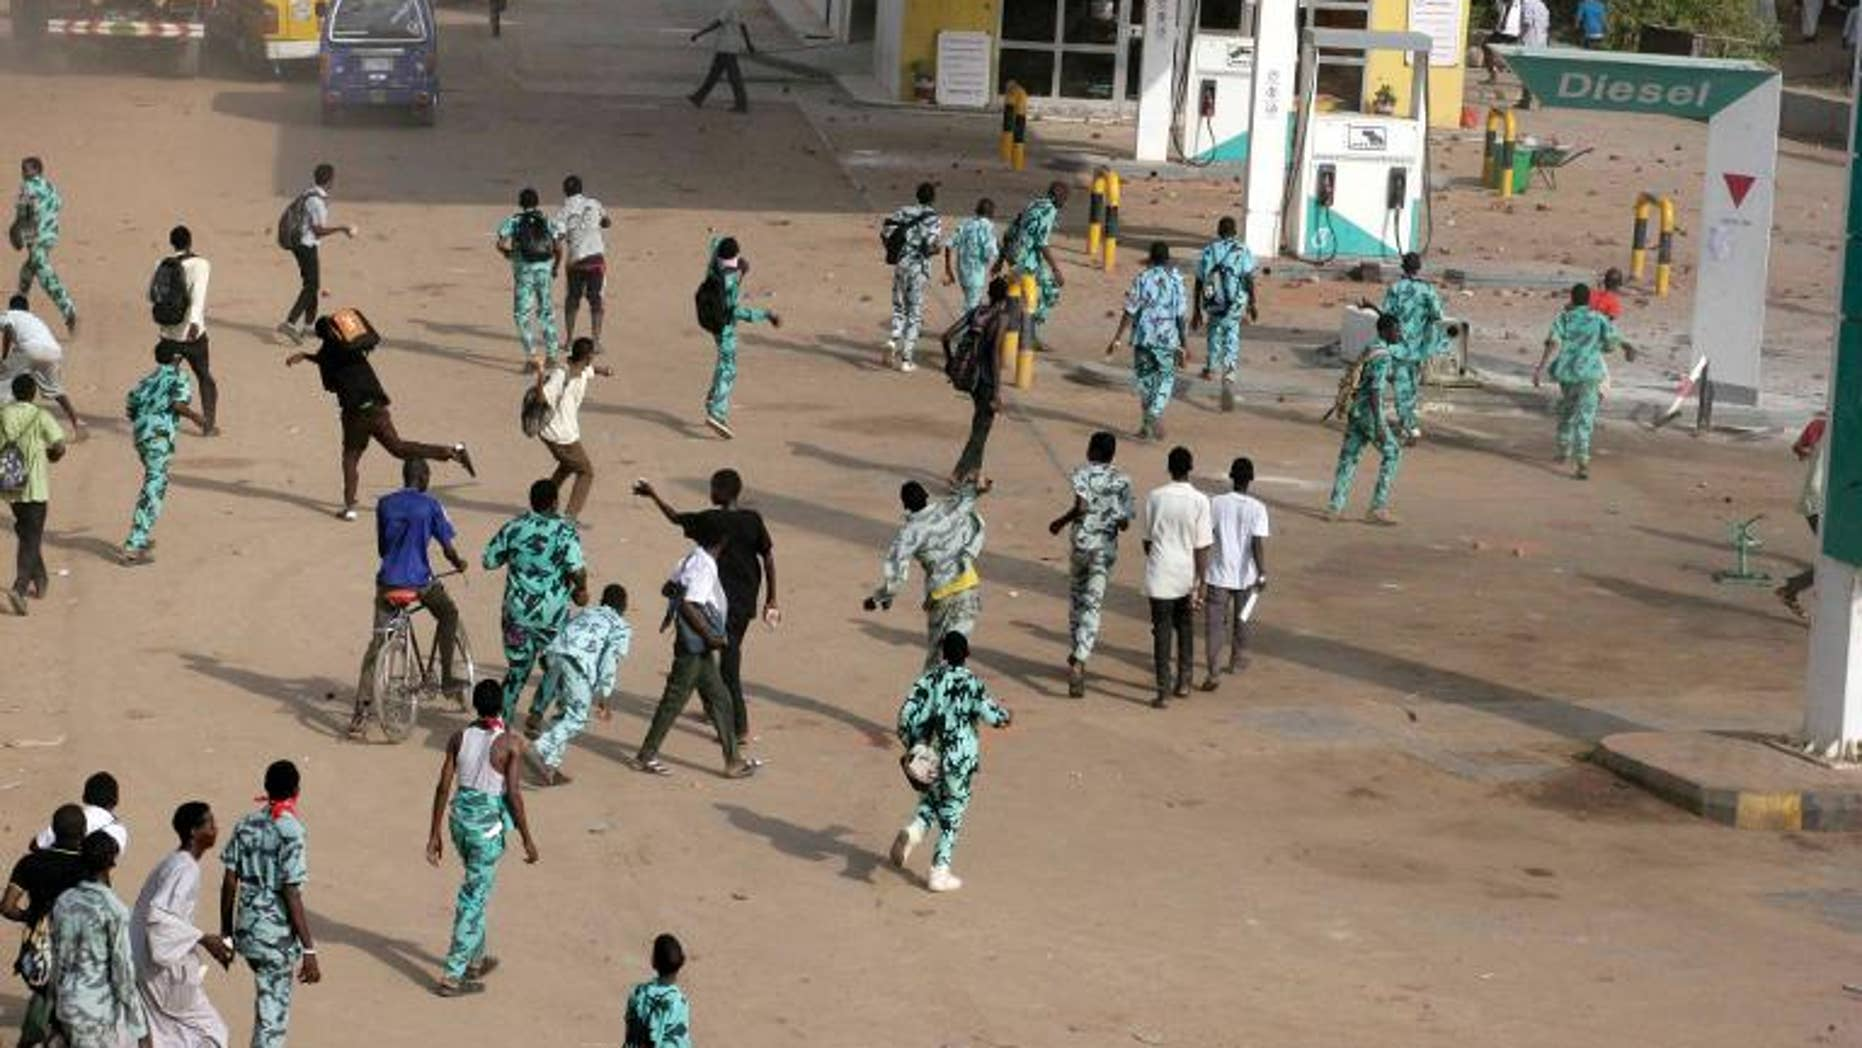 Sudanese protestors throw stones at a petrol station in Khartoum's twin city of Omdurman during a demonstration after the government announced steep price rises for petroleum products on September 25, 2013